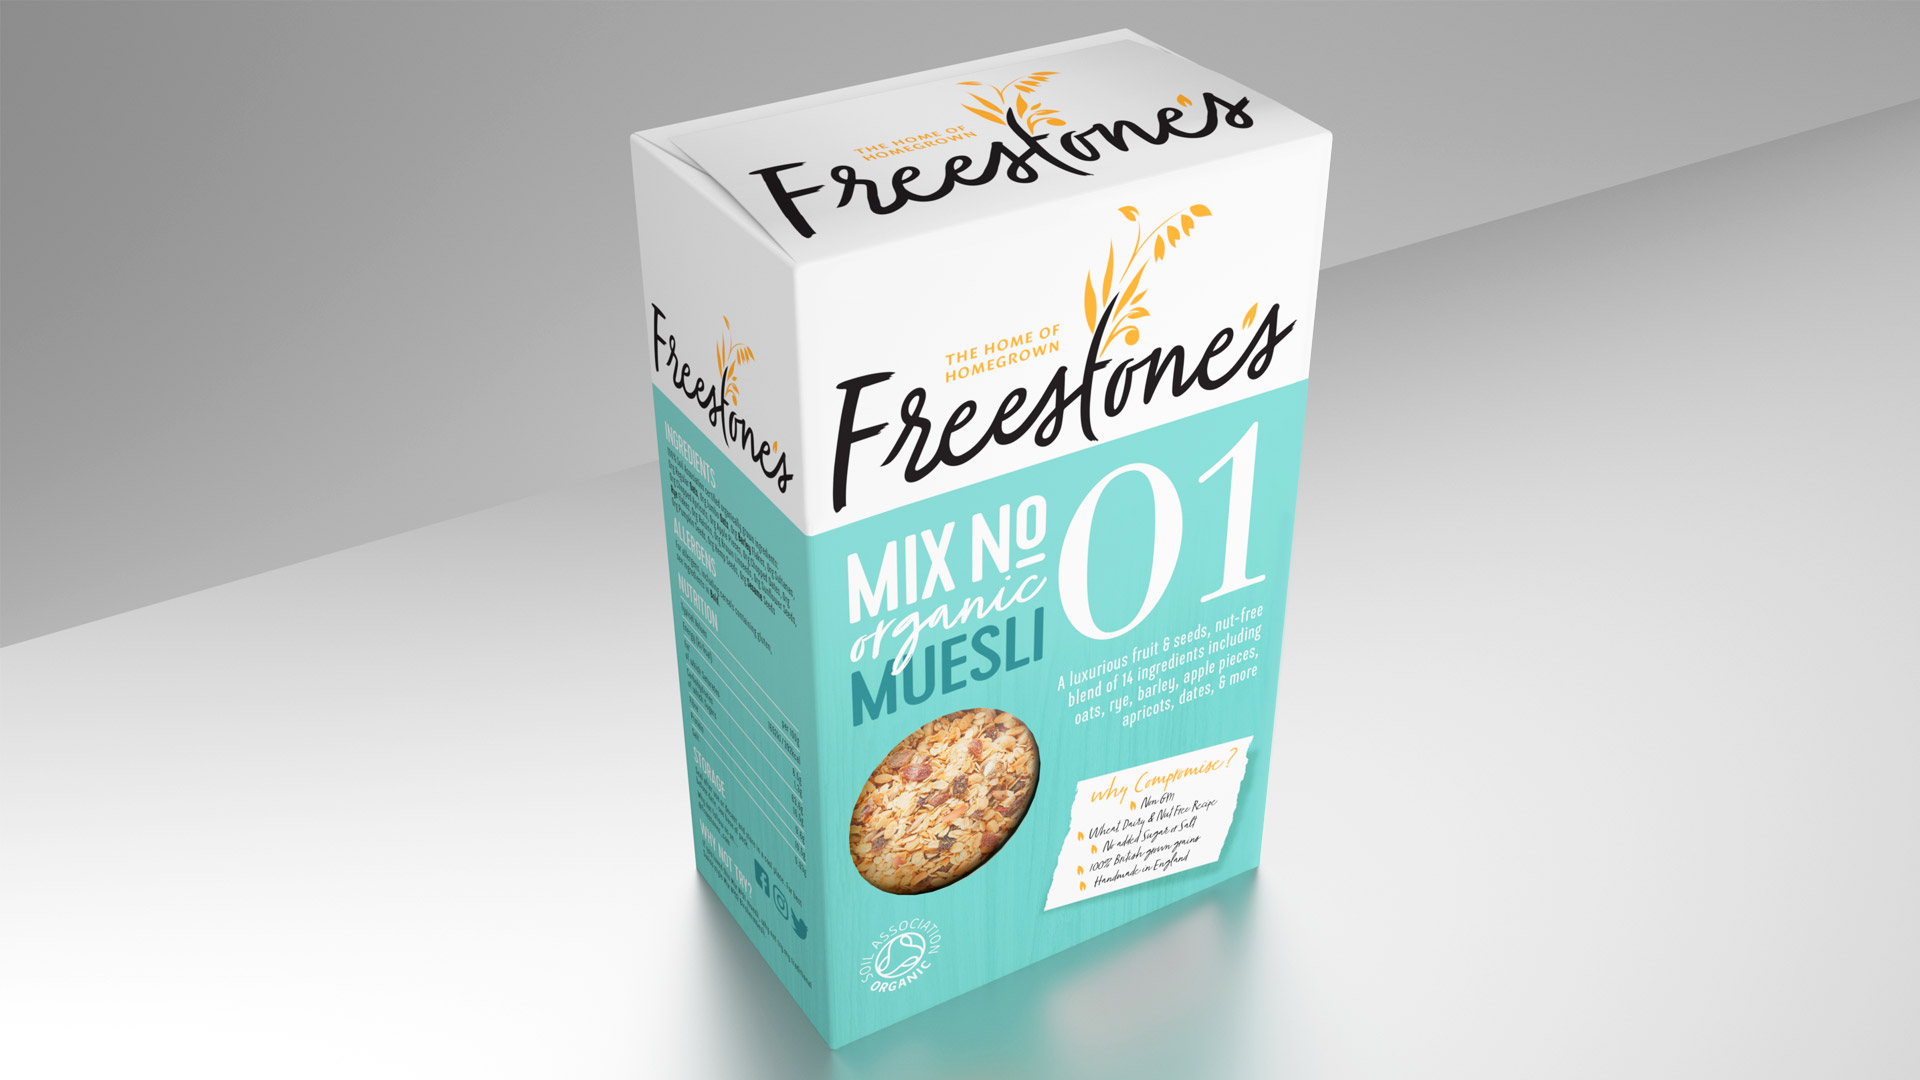 Freestones Mix No 1 Classic Muesli - The home of homegrown